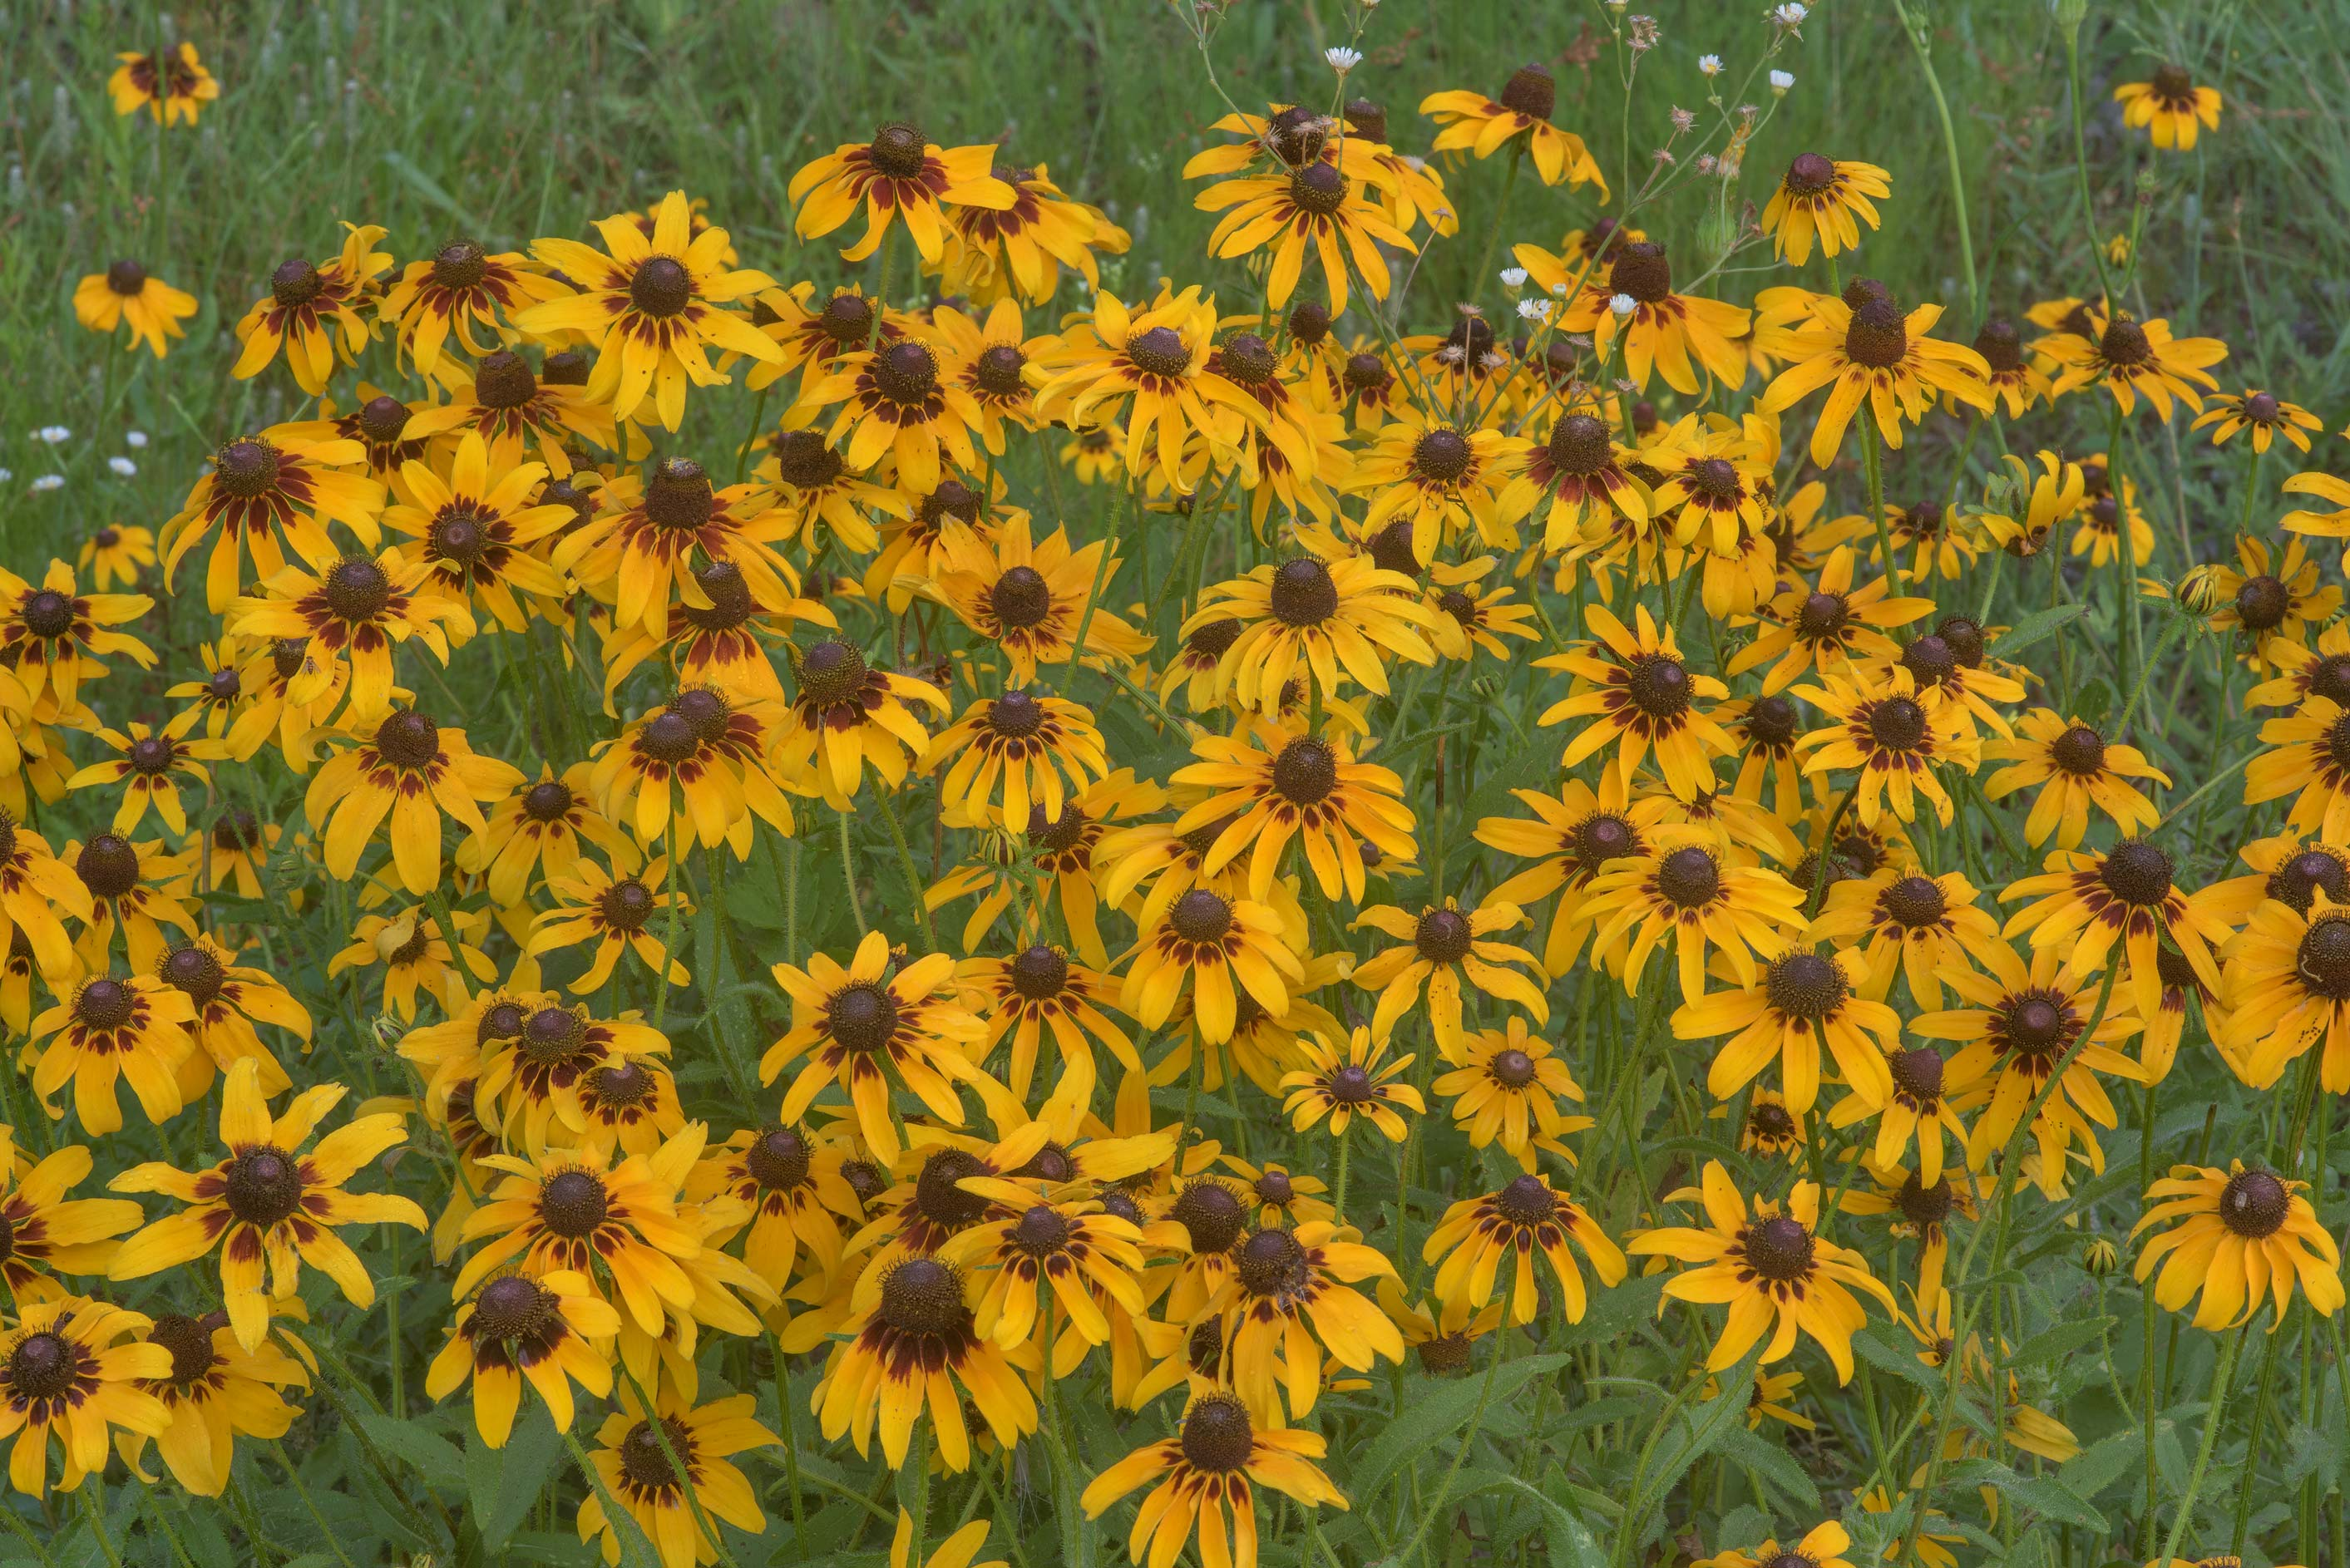 Black eyed susan flowers (Rudbeckia hirta) in Lake Bryan Park. Bryan, Texas